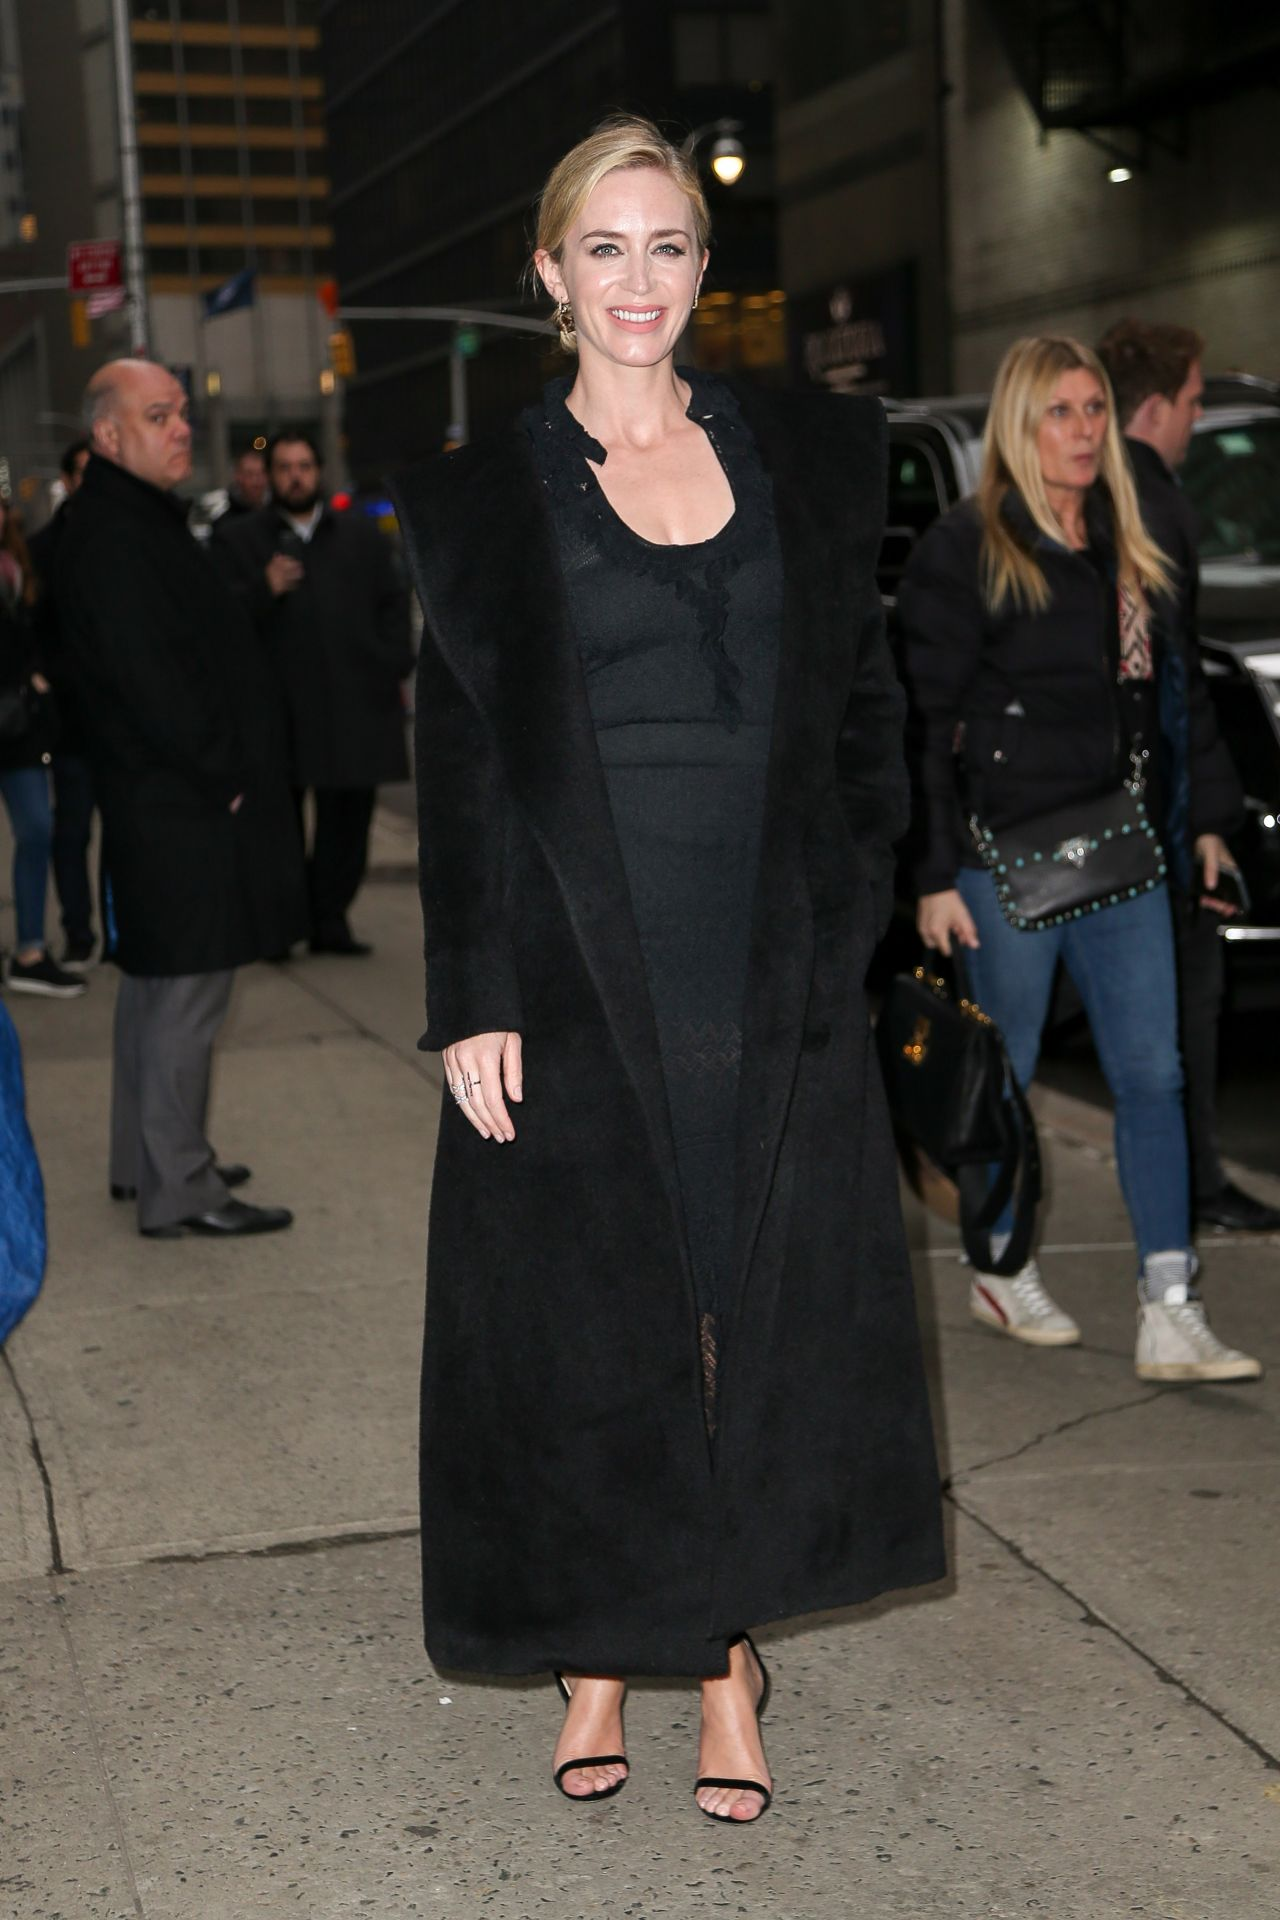 emily-blunt-outside-the-late-show-with-stephen-colbert-in-nyc-03-29-2018-8.jpg